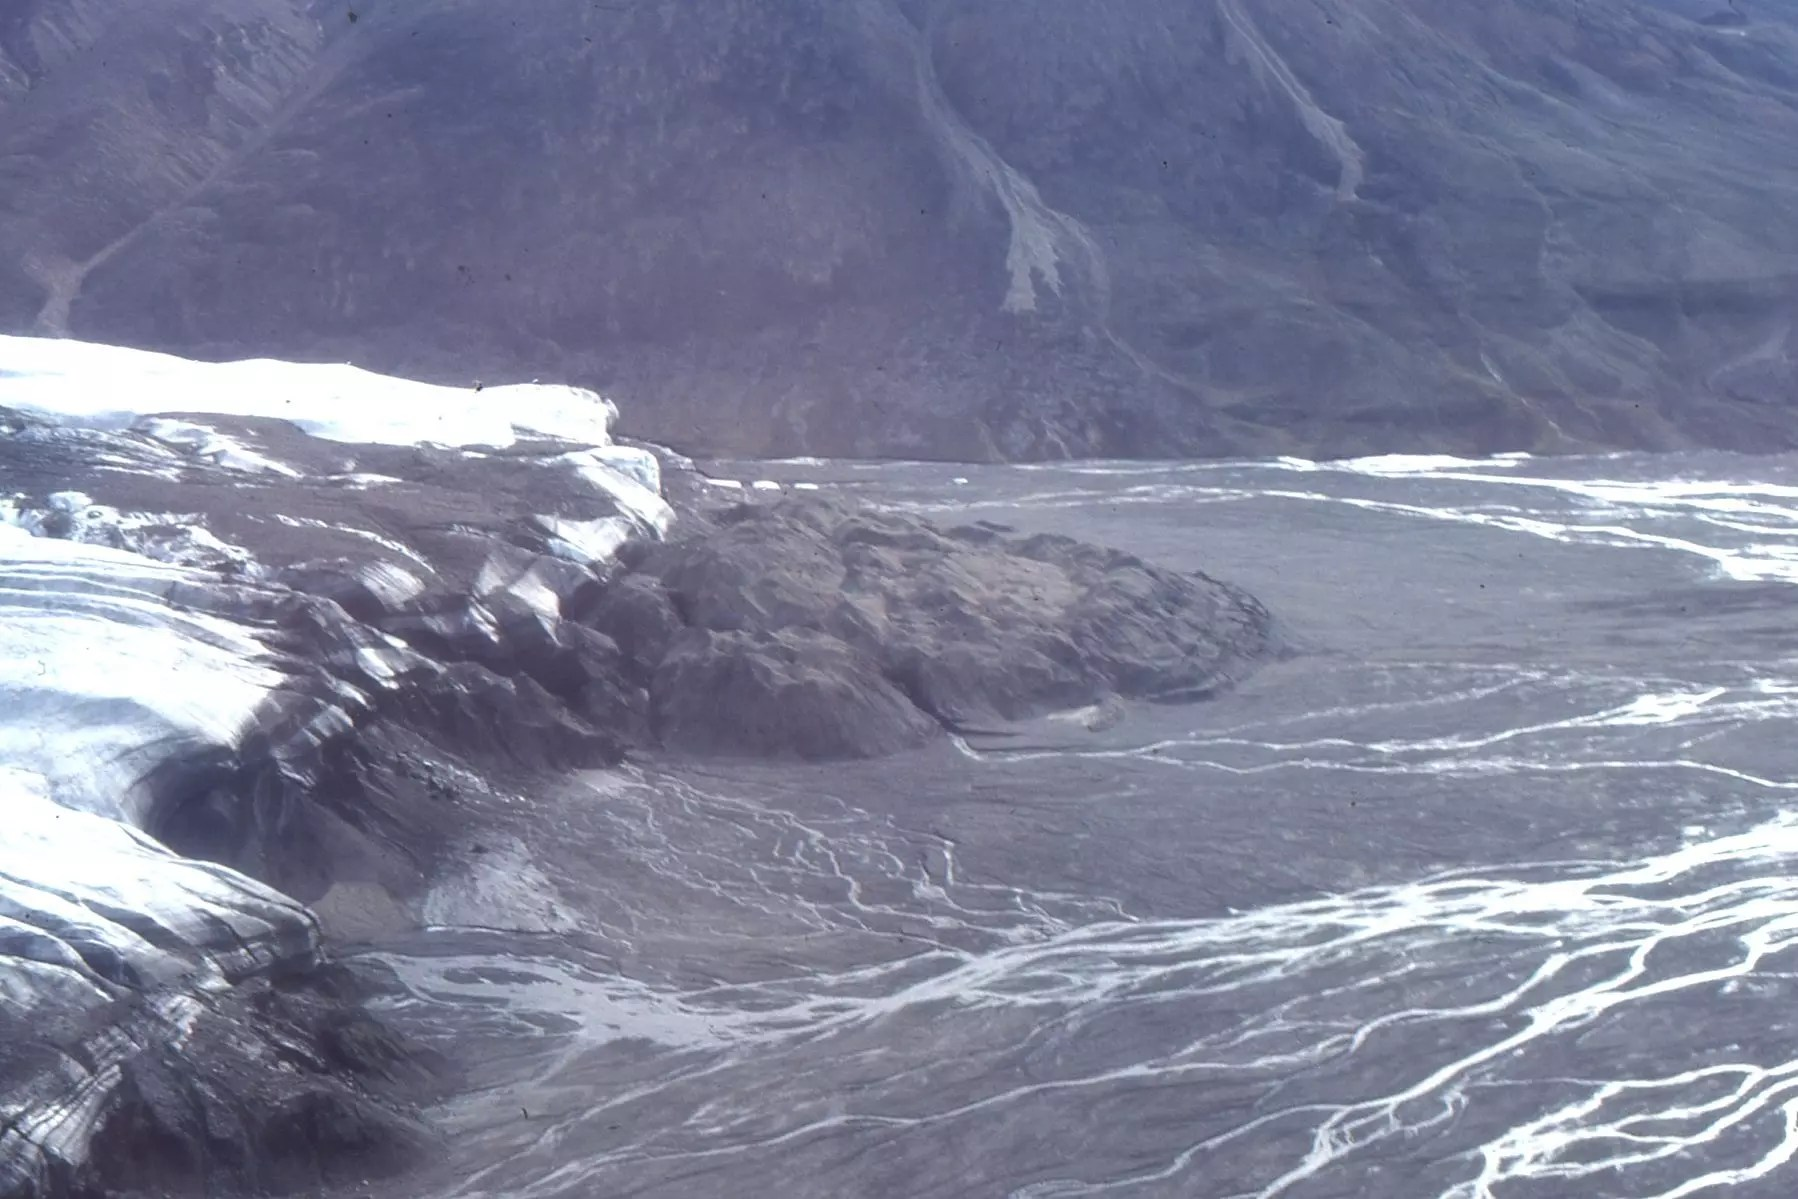 Part Of The Strand Glacier Terminal Moraine Meltwater And Outwash Channels Sediment Eventually Finds Its Way To Fiord